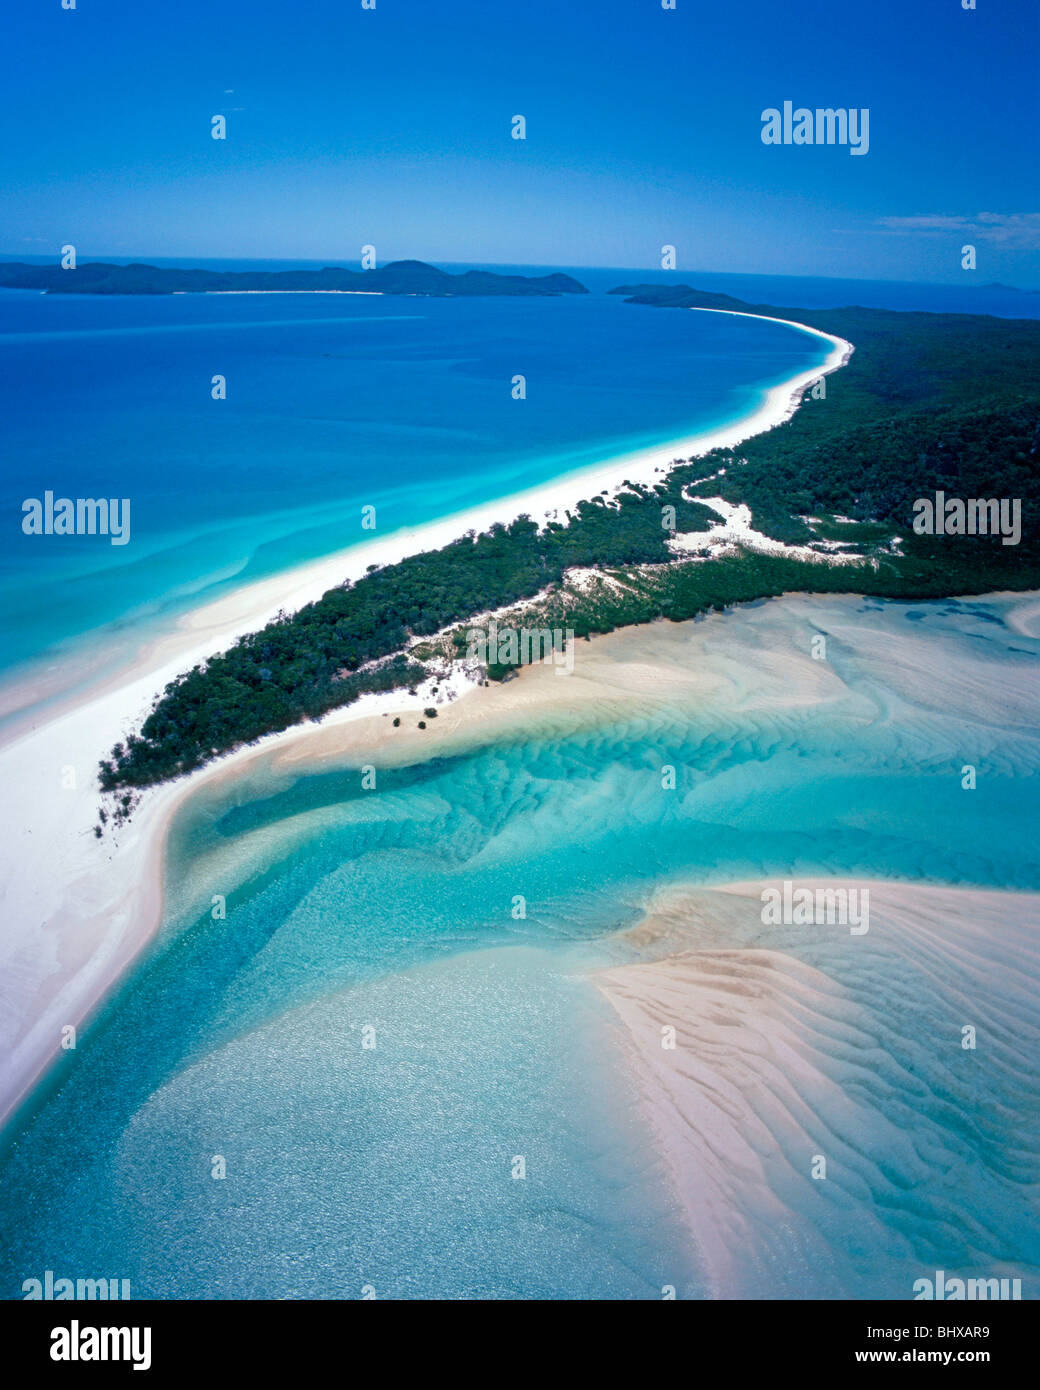 Arial Shot of Whitsunday Islands in Queensland, Australia - Stock Image